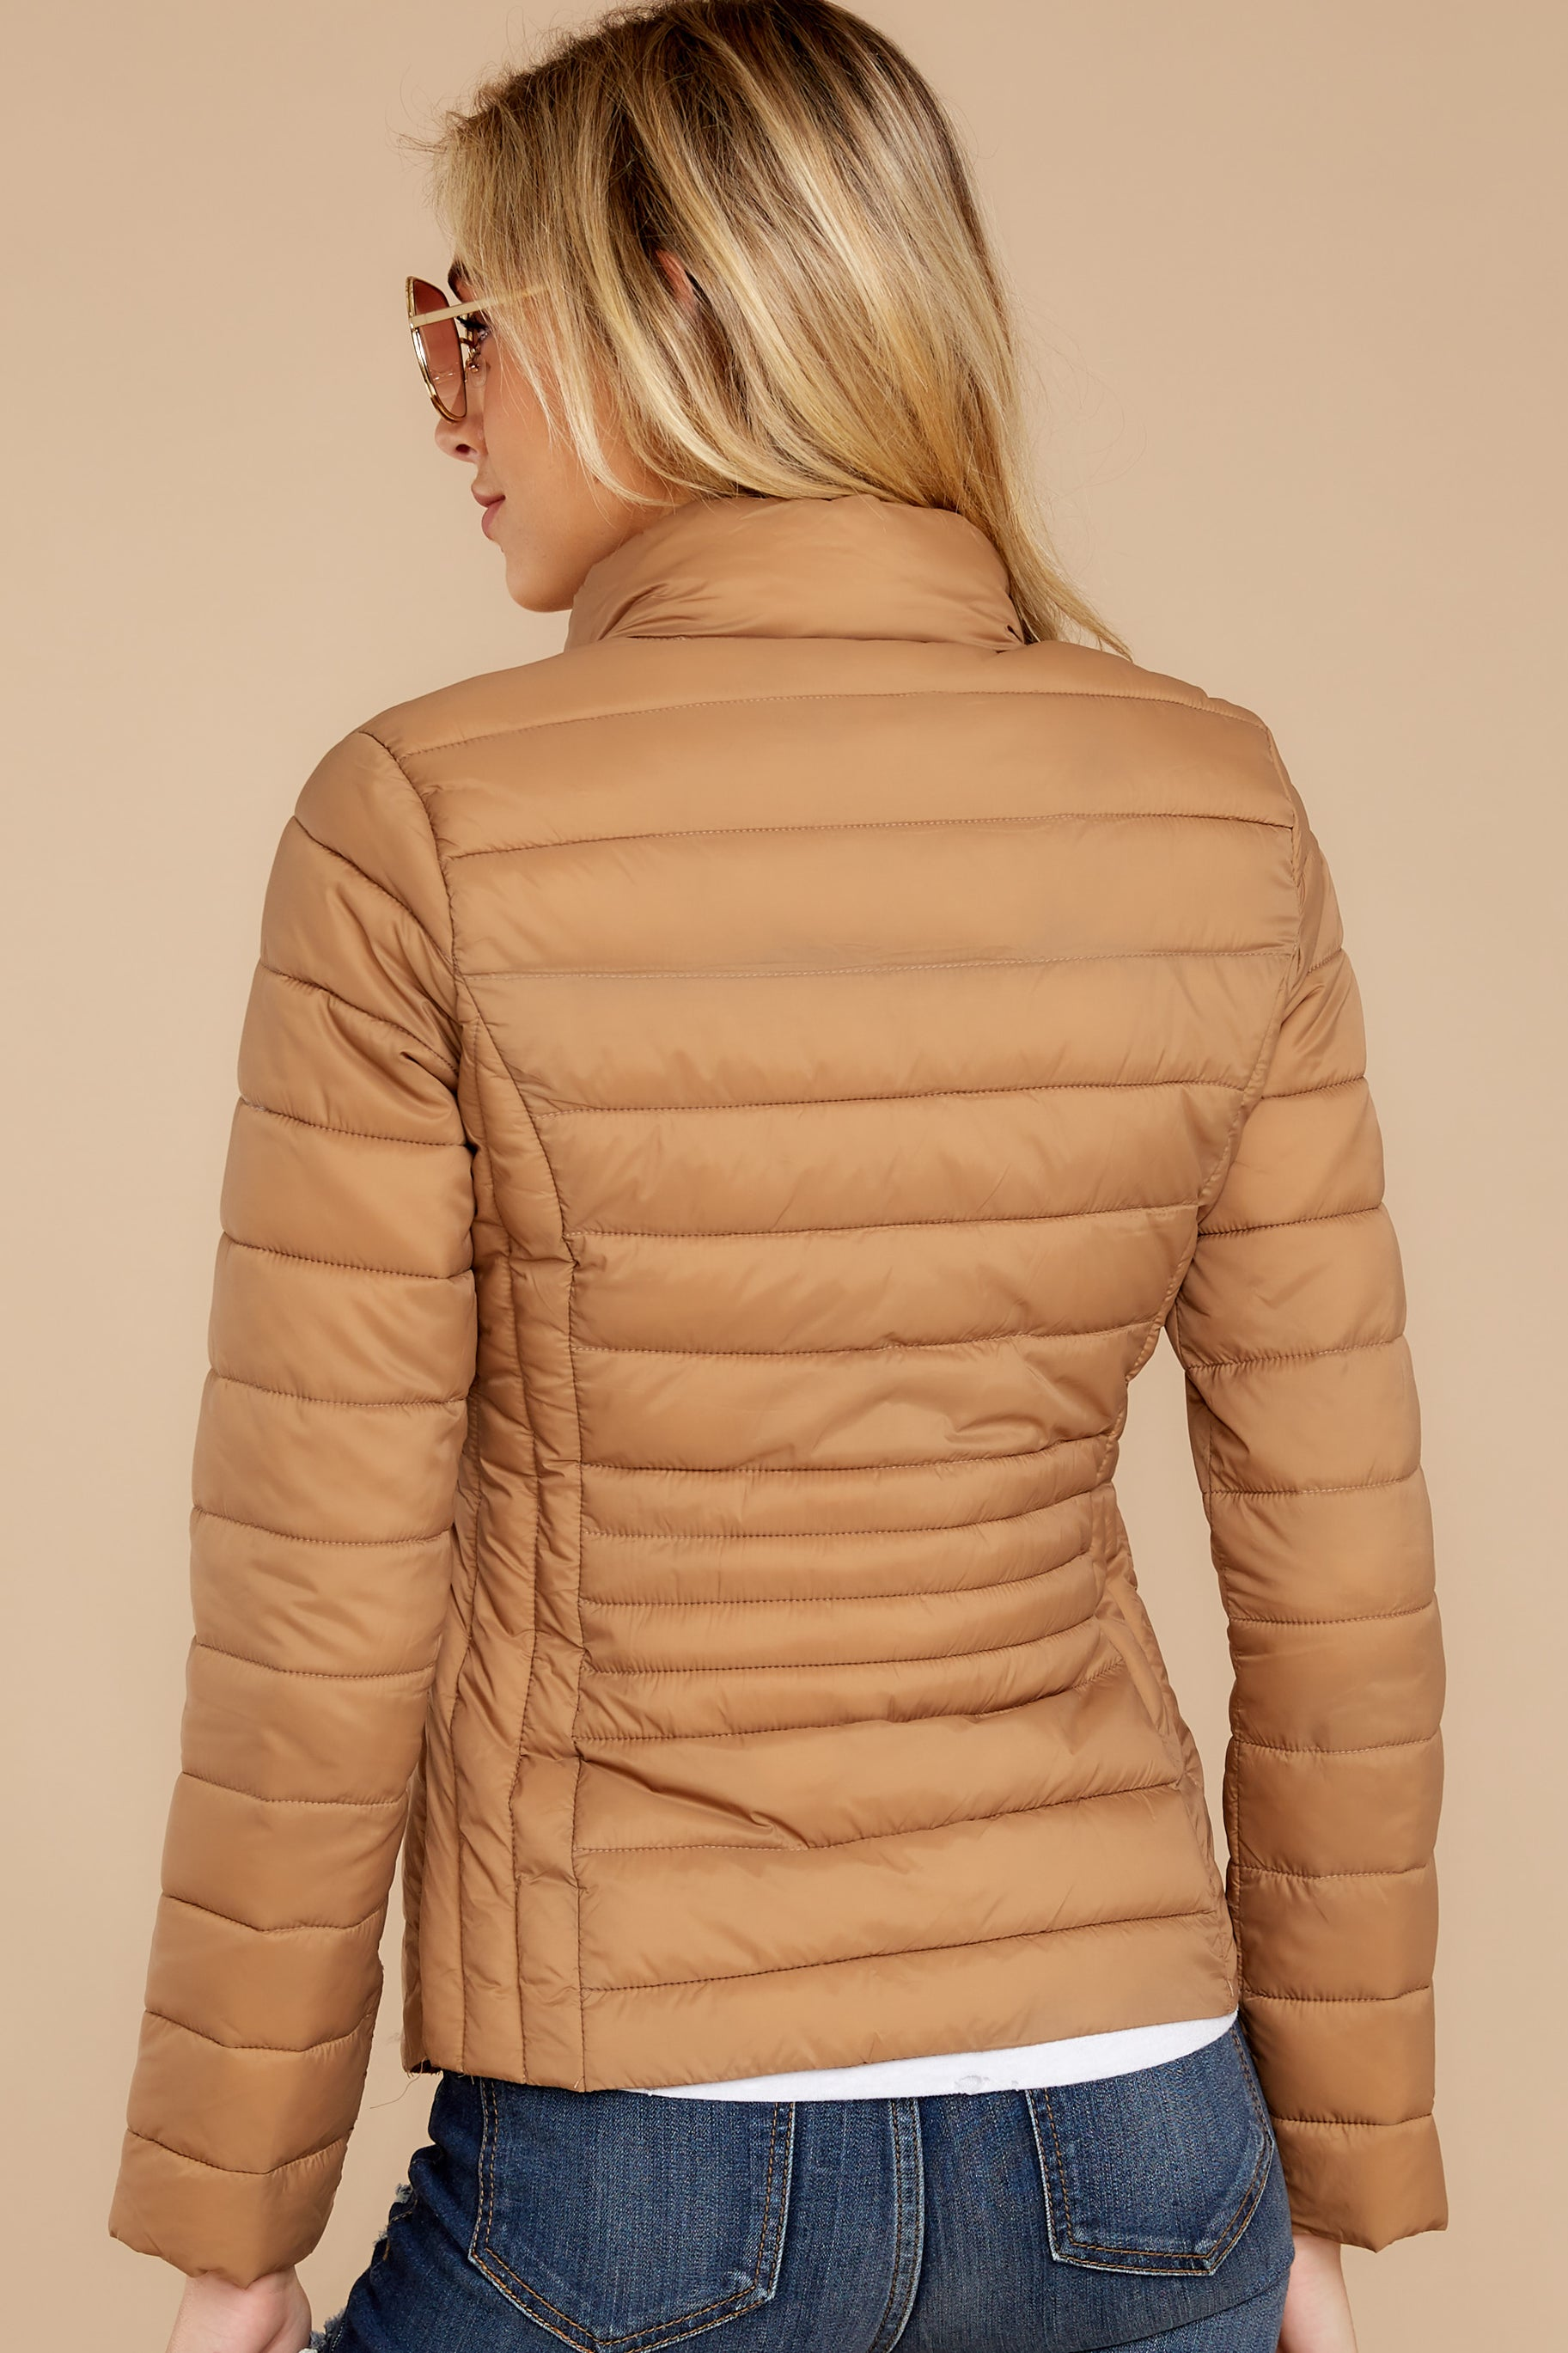 Weather Or Not Camel Puffer Jacket